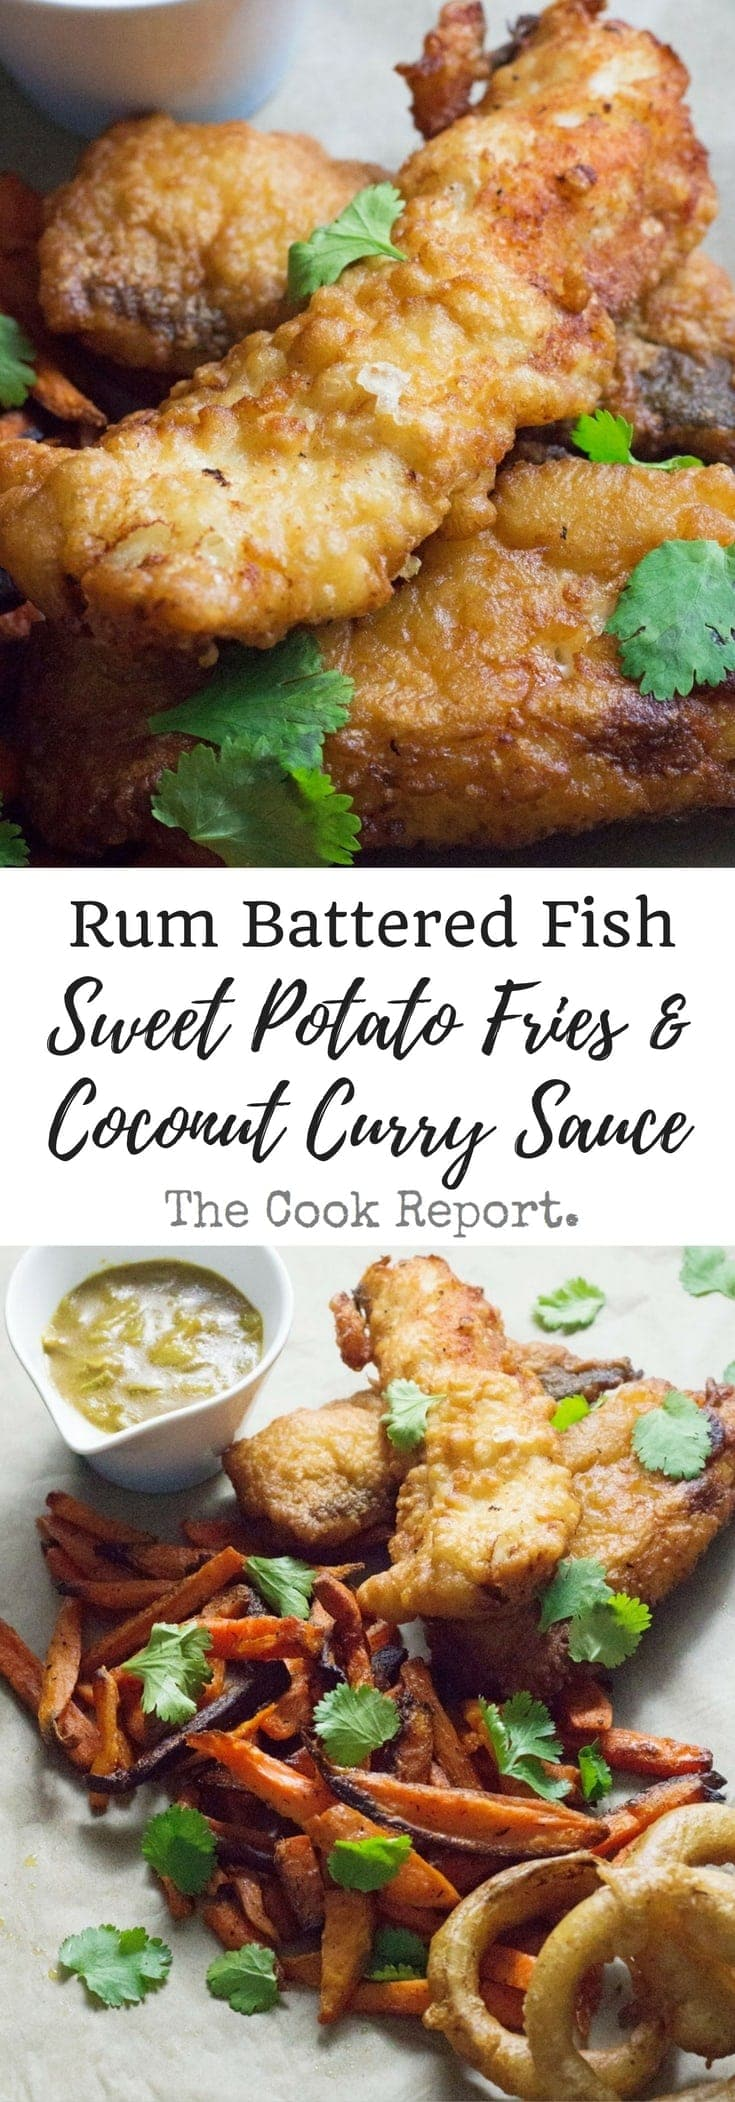 This Caribbean style fish and chips is made up of rum battered fish, sweet potato fries and an incredible coconut curry sauce!